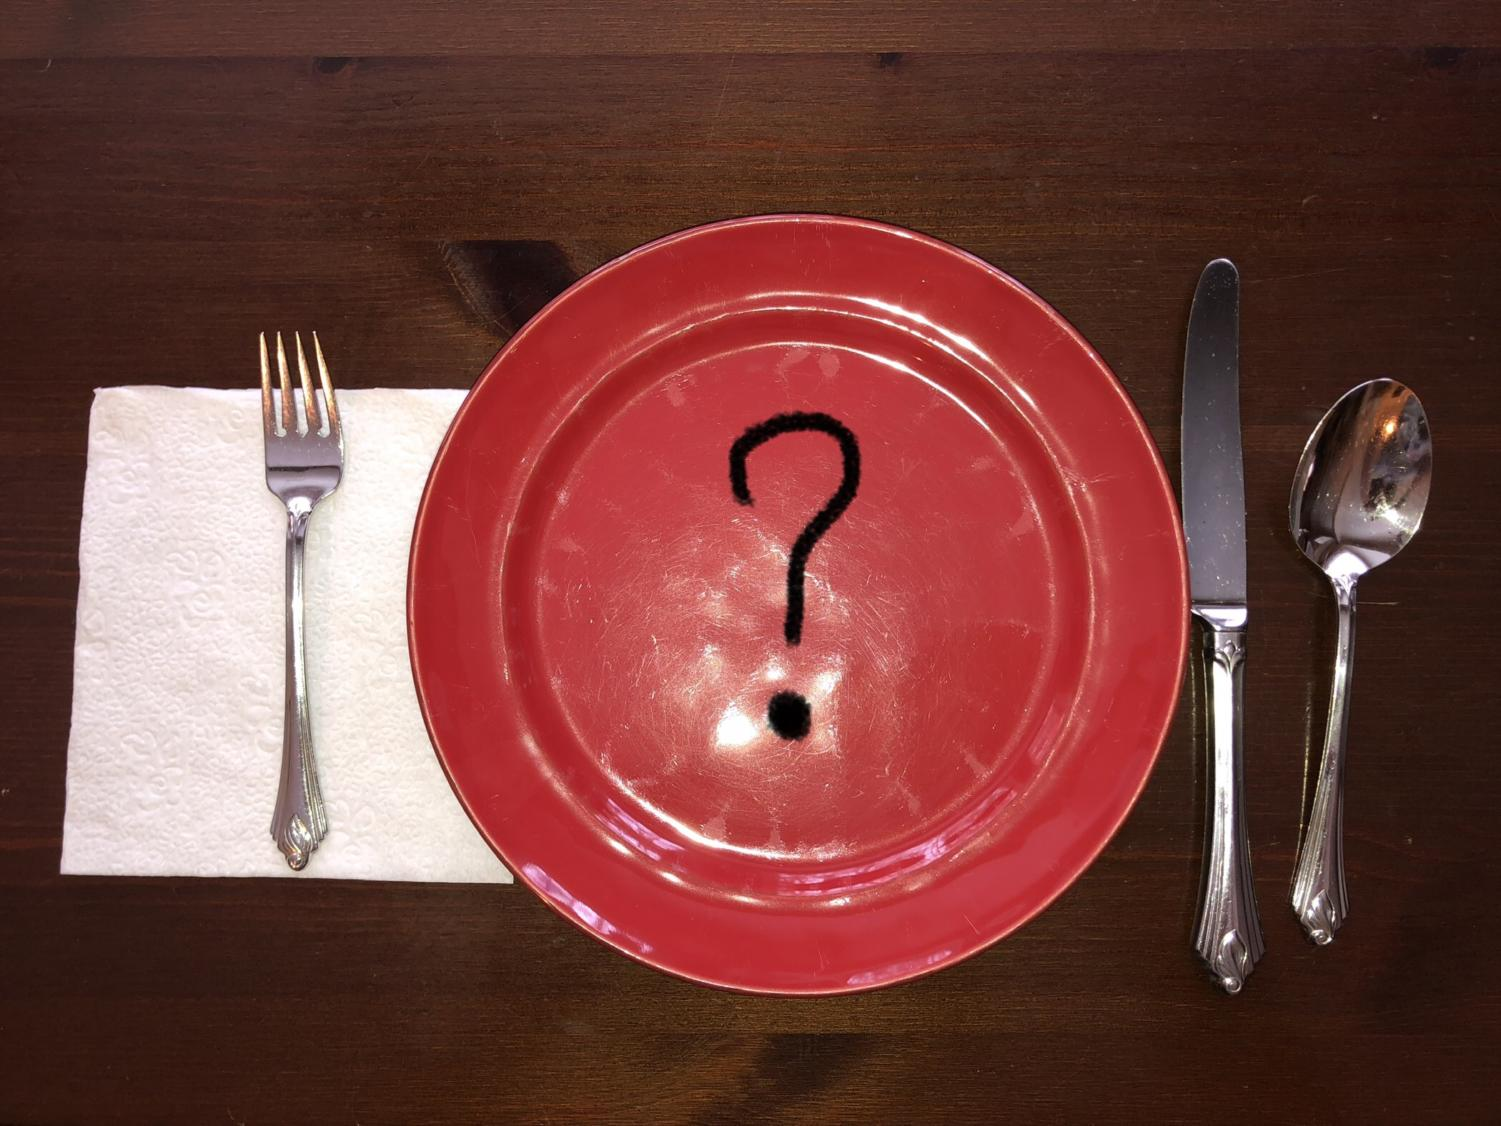 What's going to fill your plate?